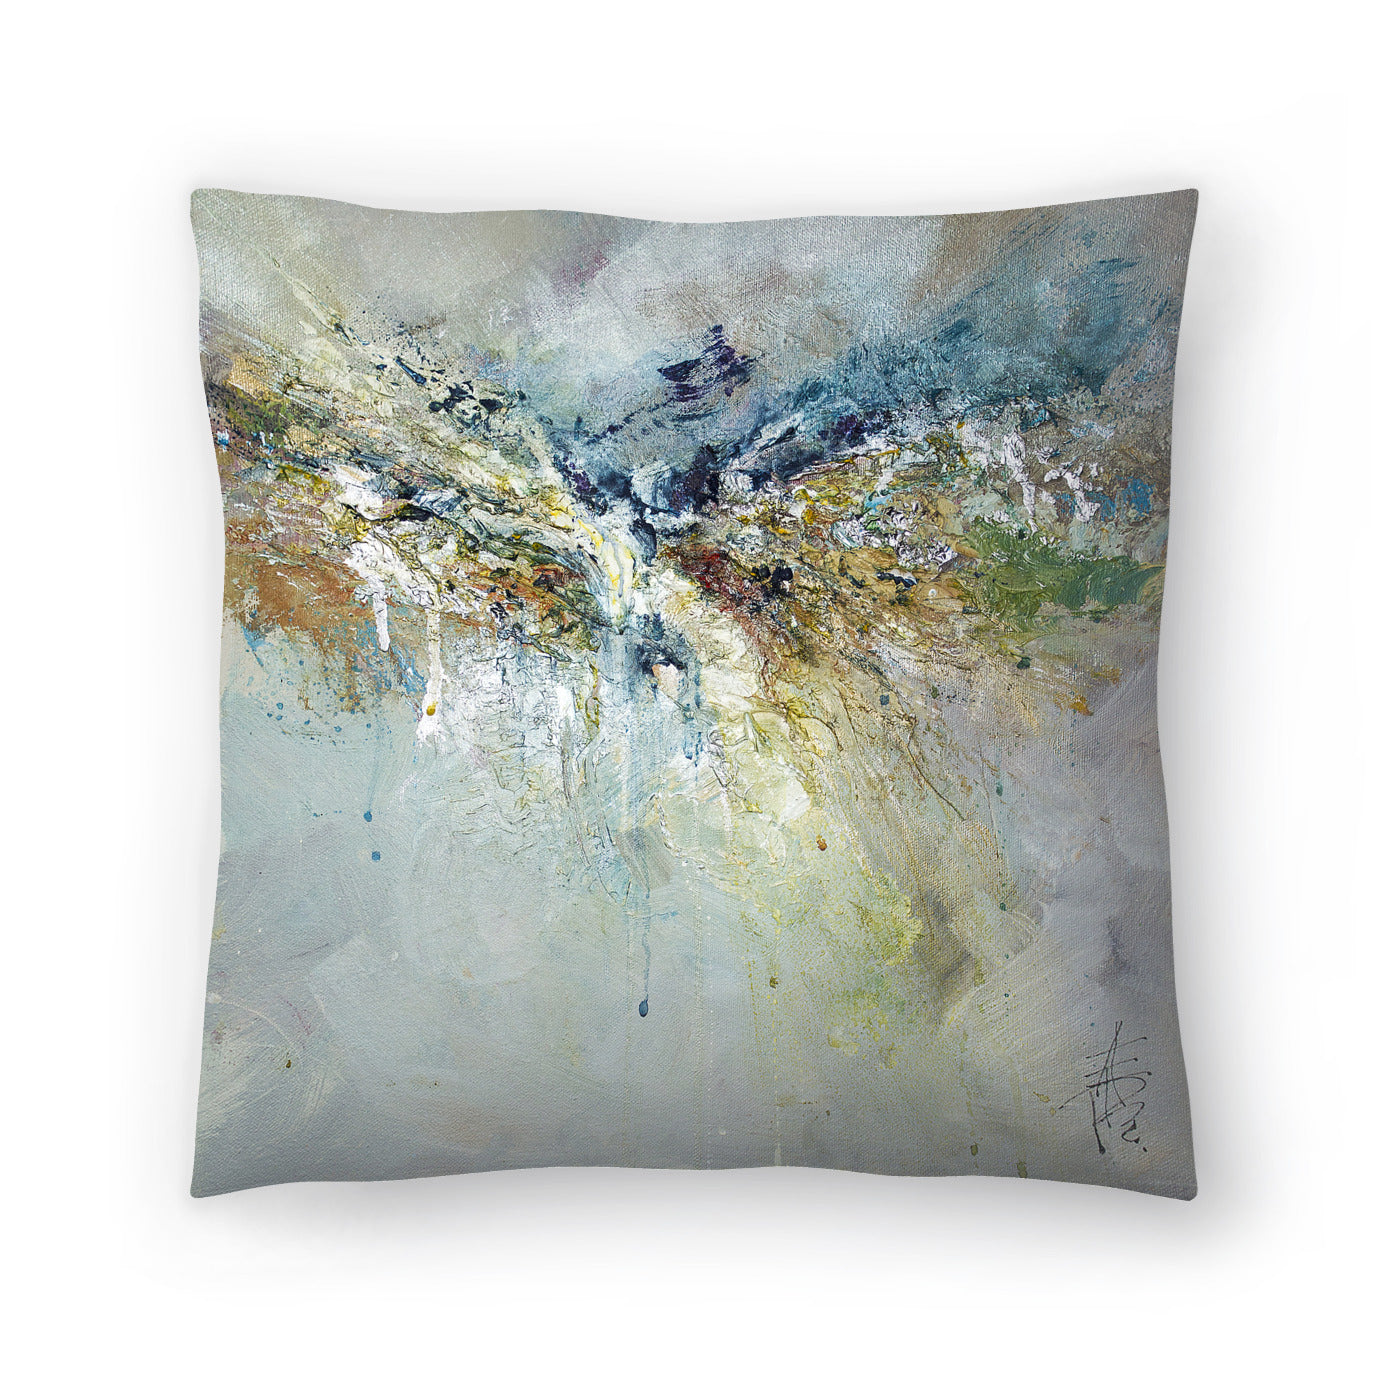 Organic 7 by Anne Farrall Doyle Decorative Pillow - Decorative Pillow - Americanflat